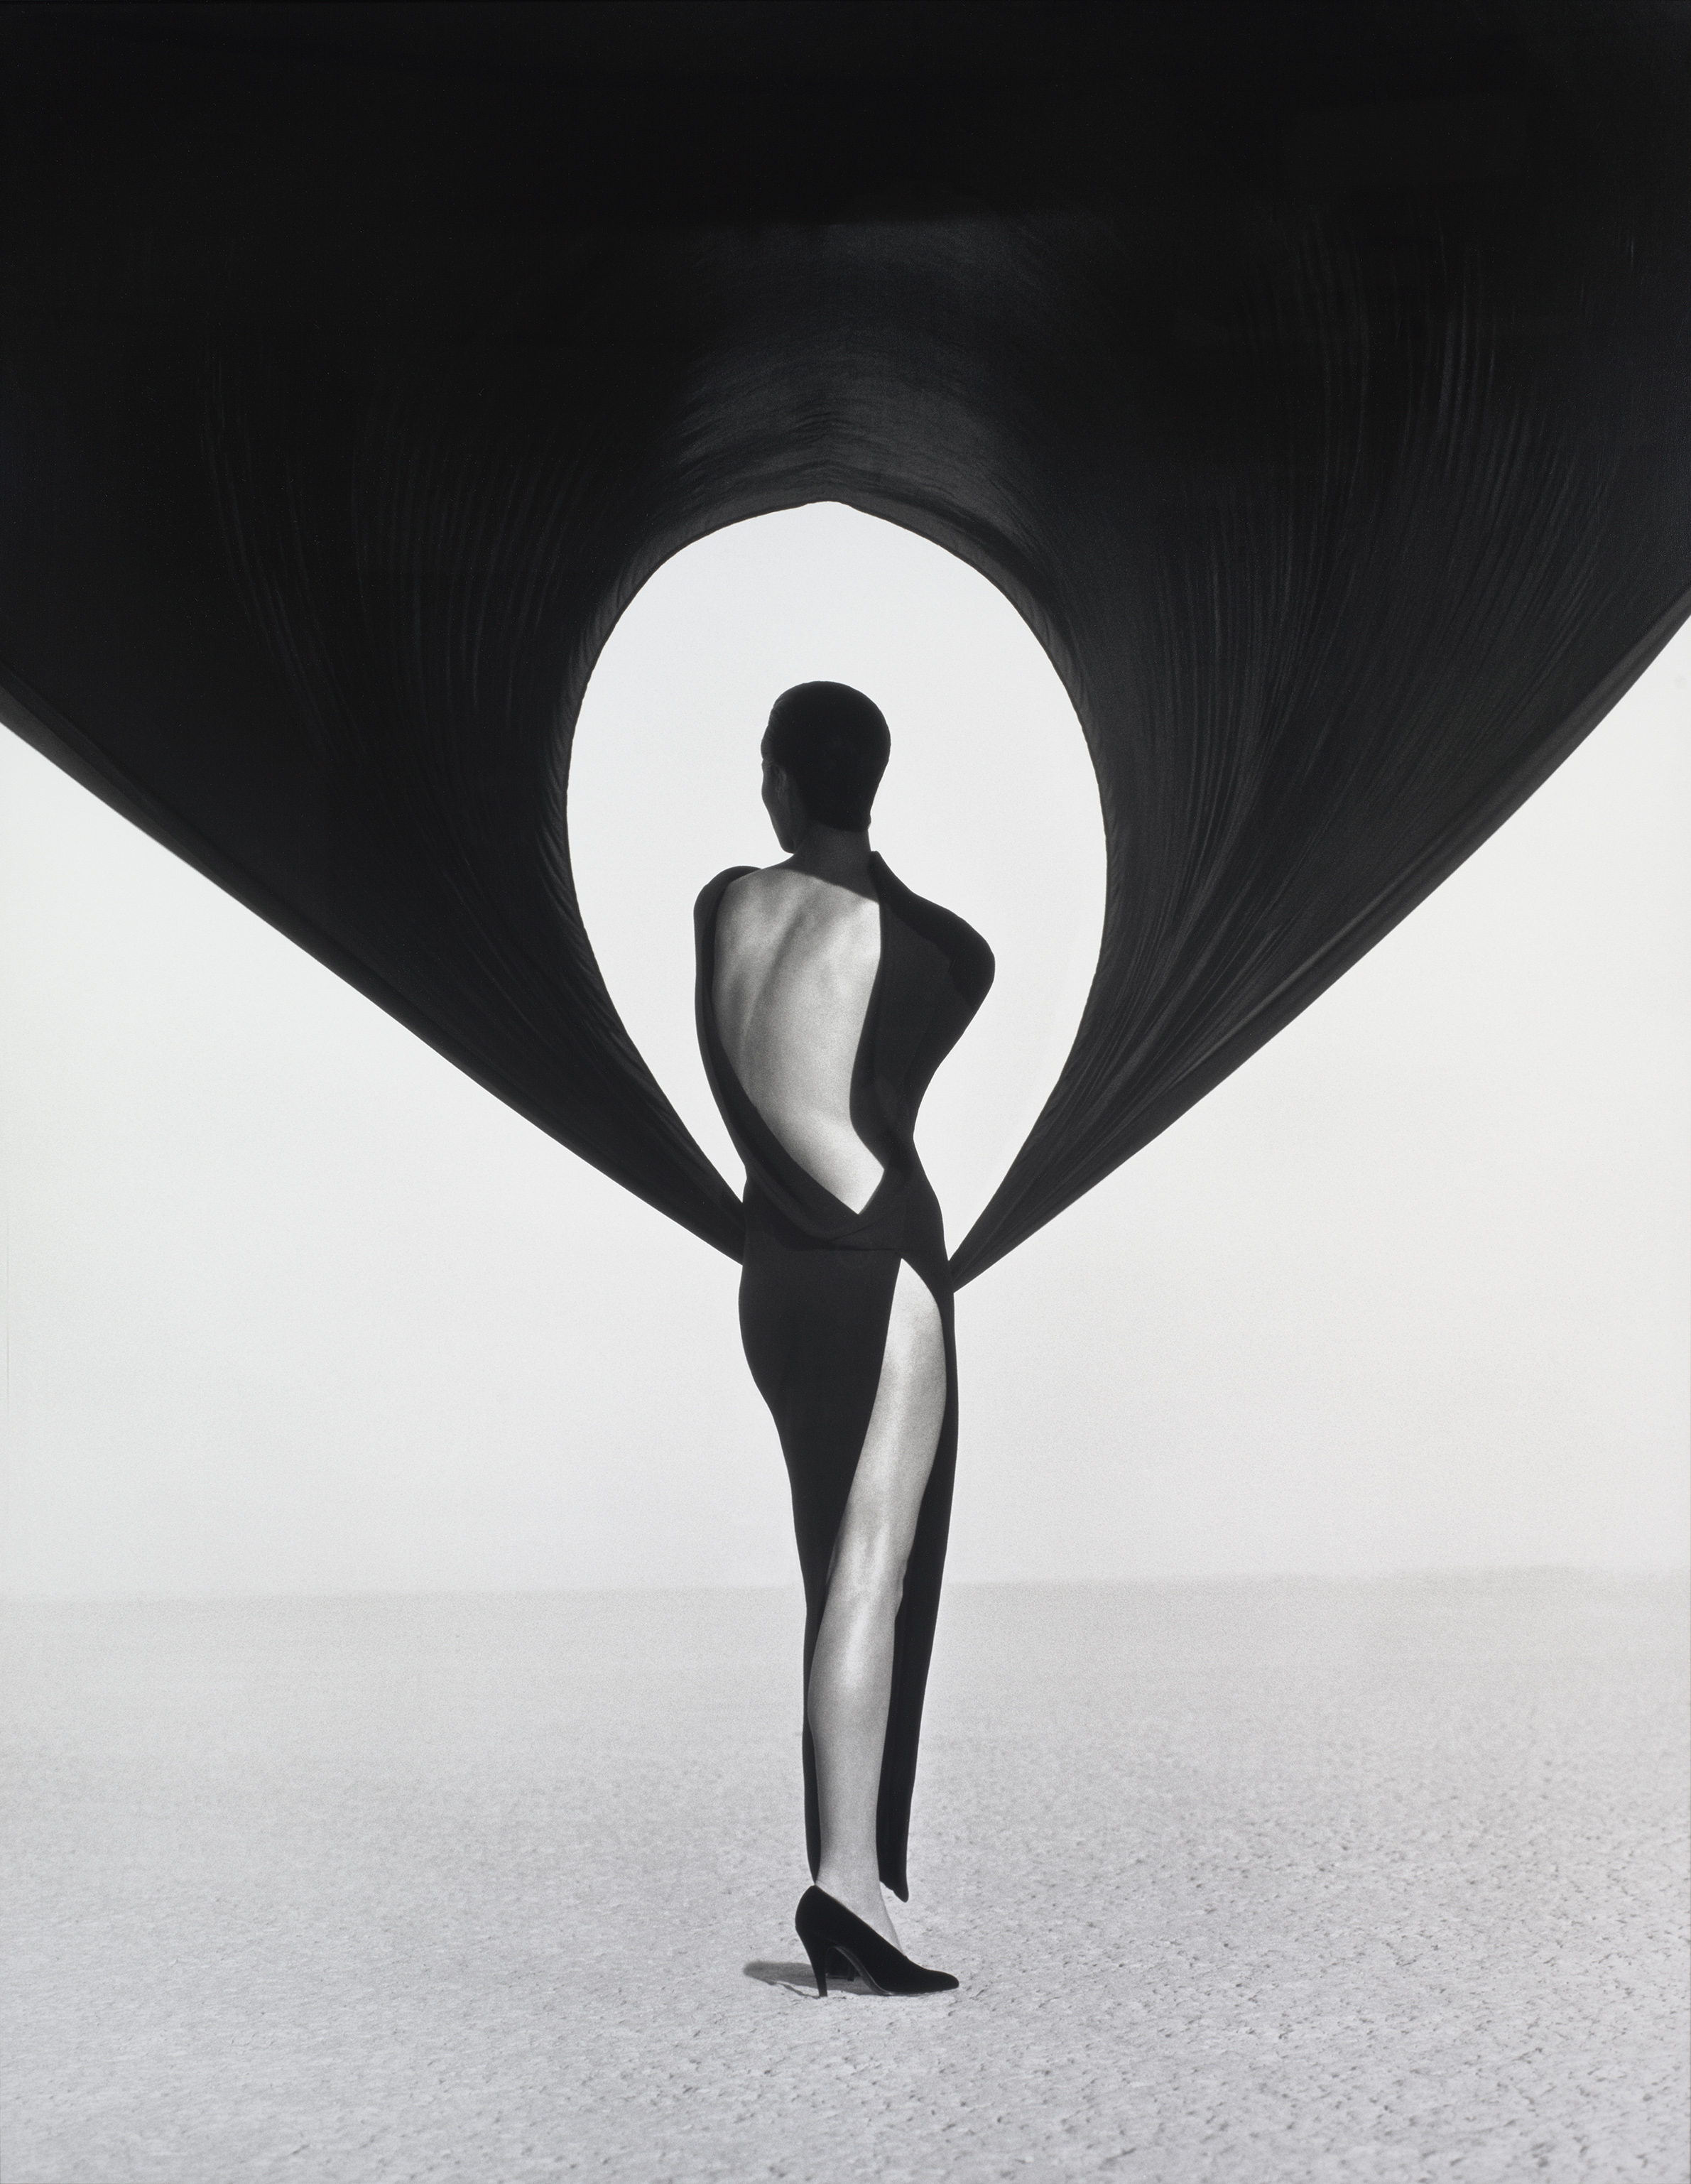 Versace Dress, Back View, El Mirage Herb Ritts (American, 1952–2002) 1990 Photograph, gelatin silver print * Gift of Herb Ritts © Herb Ritts Foundation * Photograph © Museum of Fine Arts, Boston